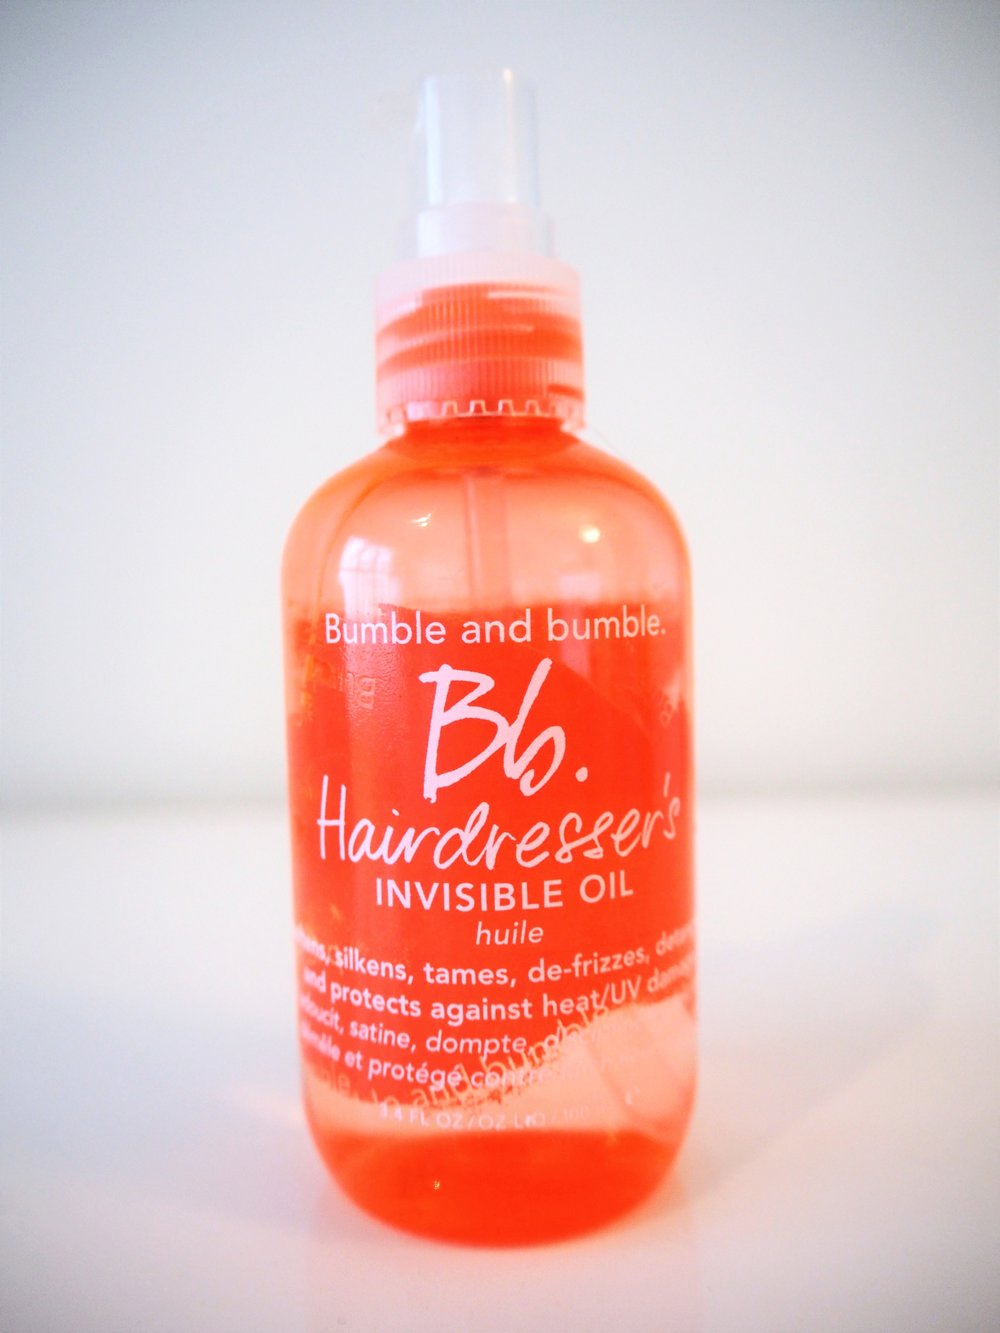 Bumble and bumble BB Hairdresser's INVISIBLE OIL - ahhhhmazing for styling and after washing.